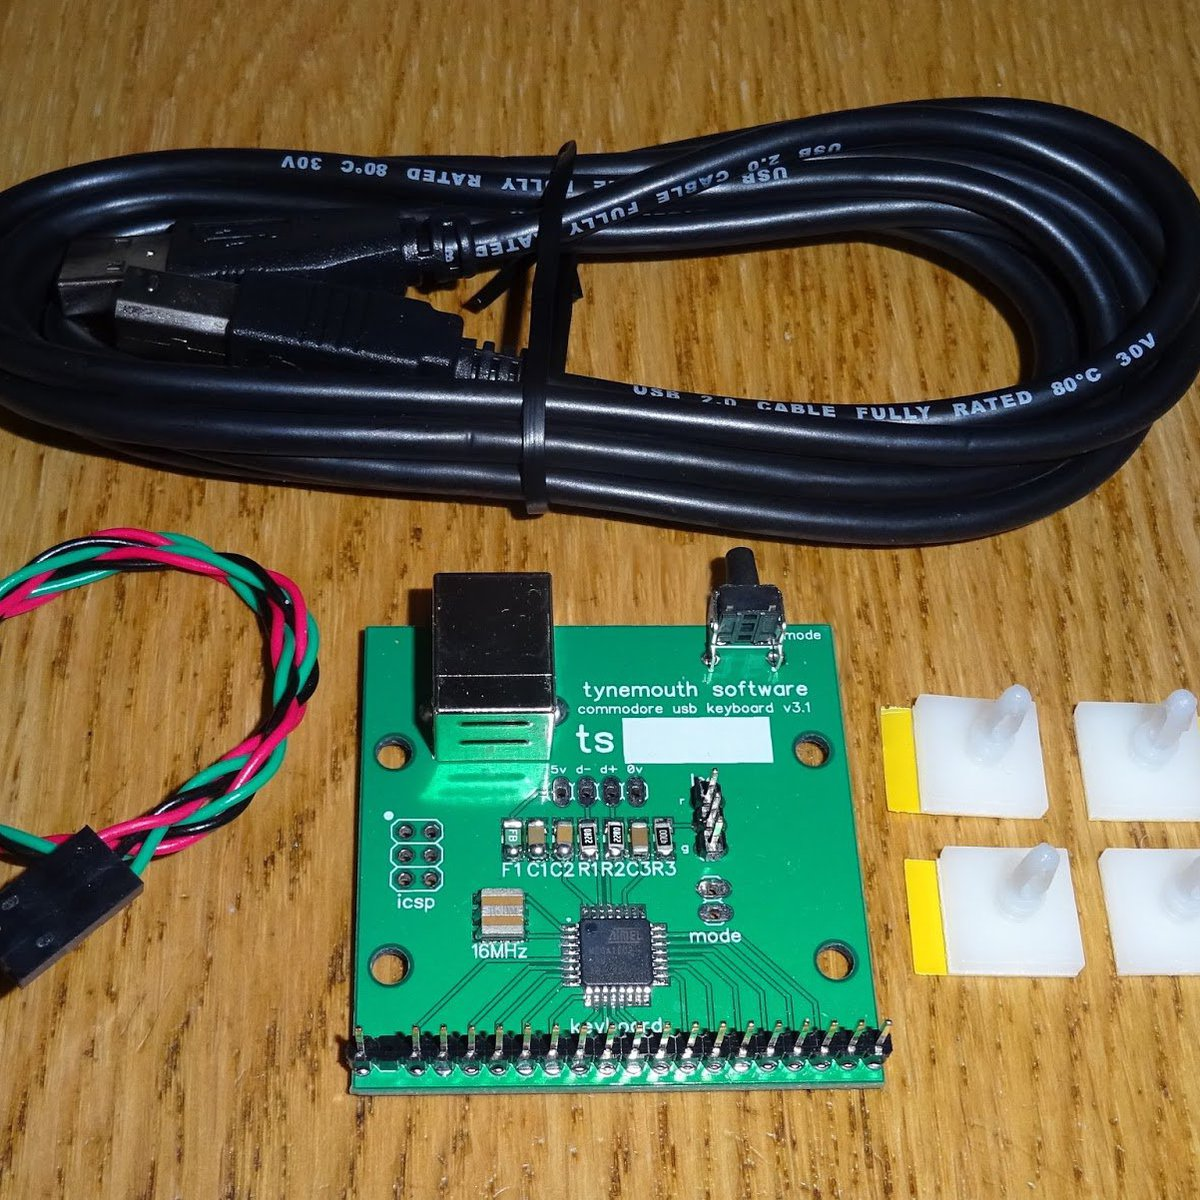 Commodore 64 USB keyboard kit from Tynemouth Software on Tindie